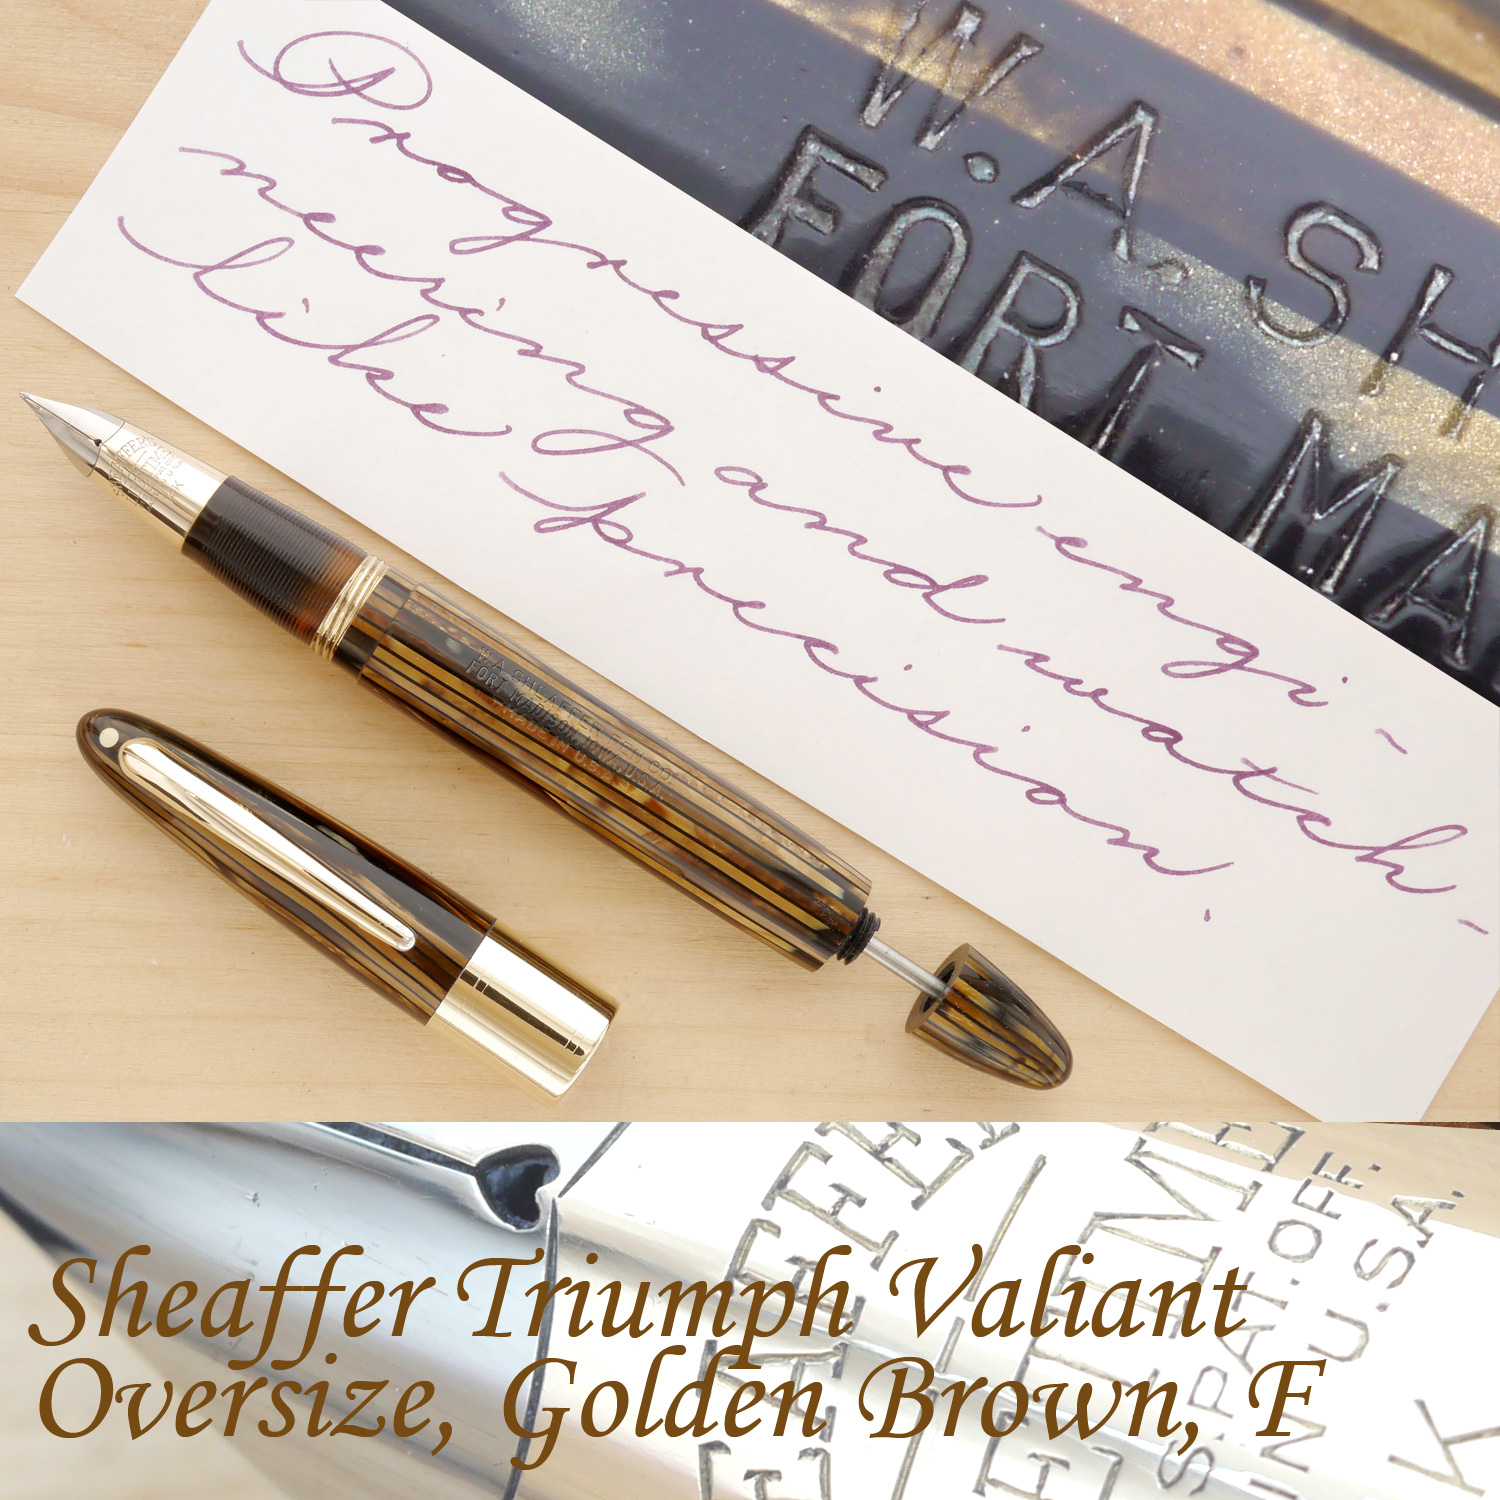 Sheaffer Triumph Valiant Oversize Fountain Pen, Golden Brown, F, uncapped, with the plunger partially extended